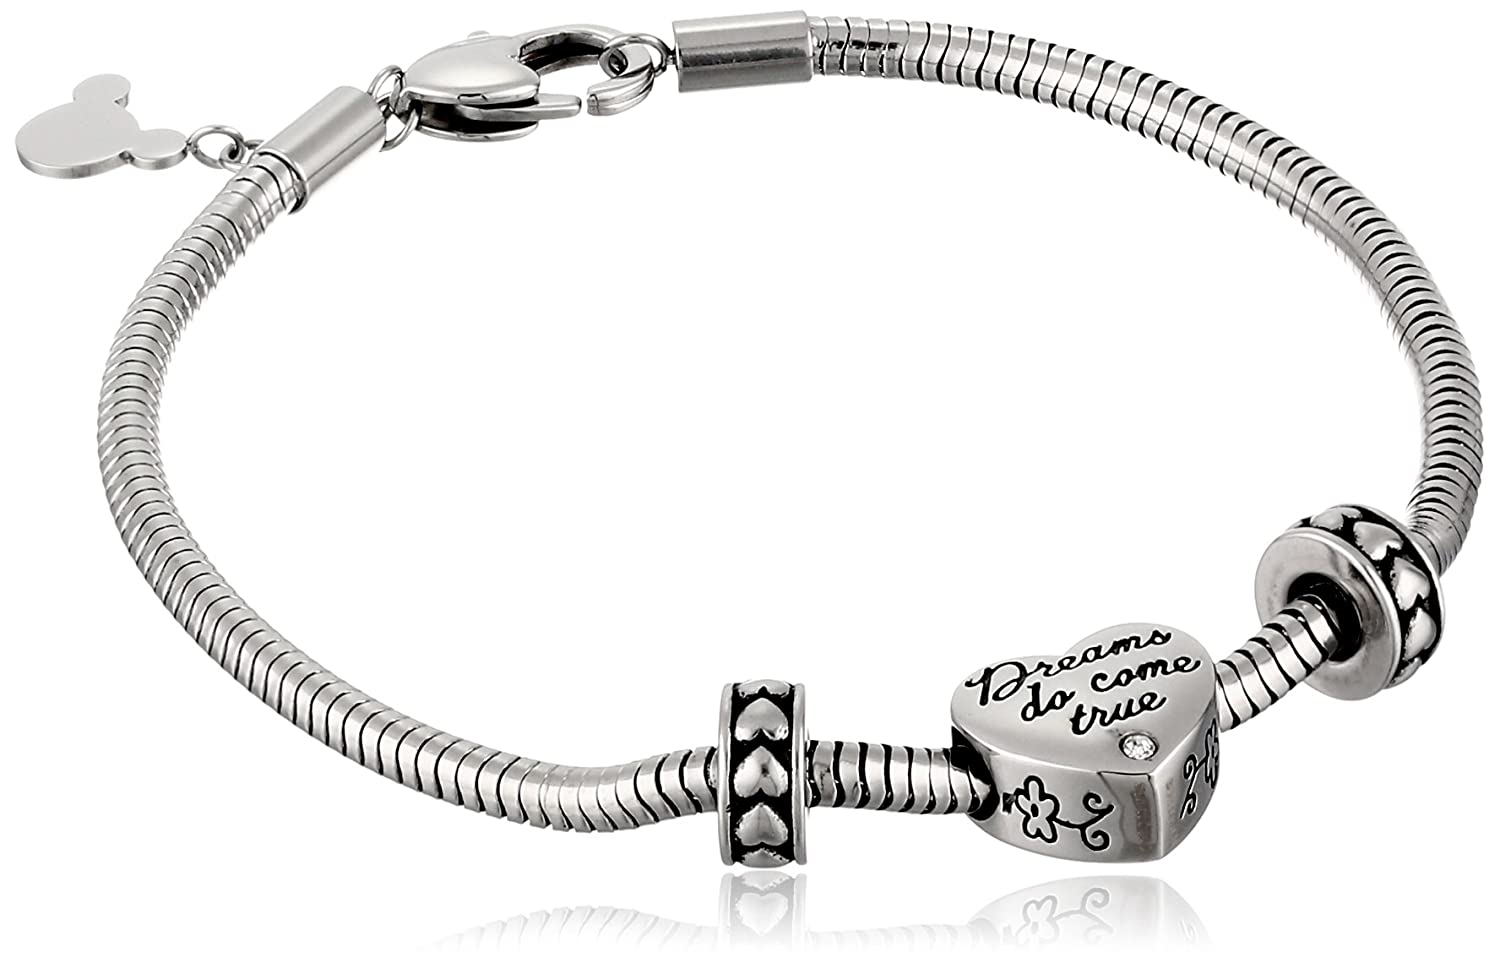 bangle caduceus ani adjustable n alex charm pin stainless inspired bangles bracelets emt bracelet steel